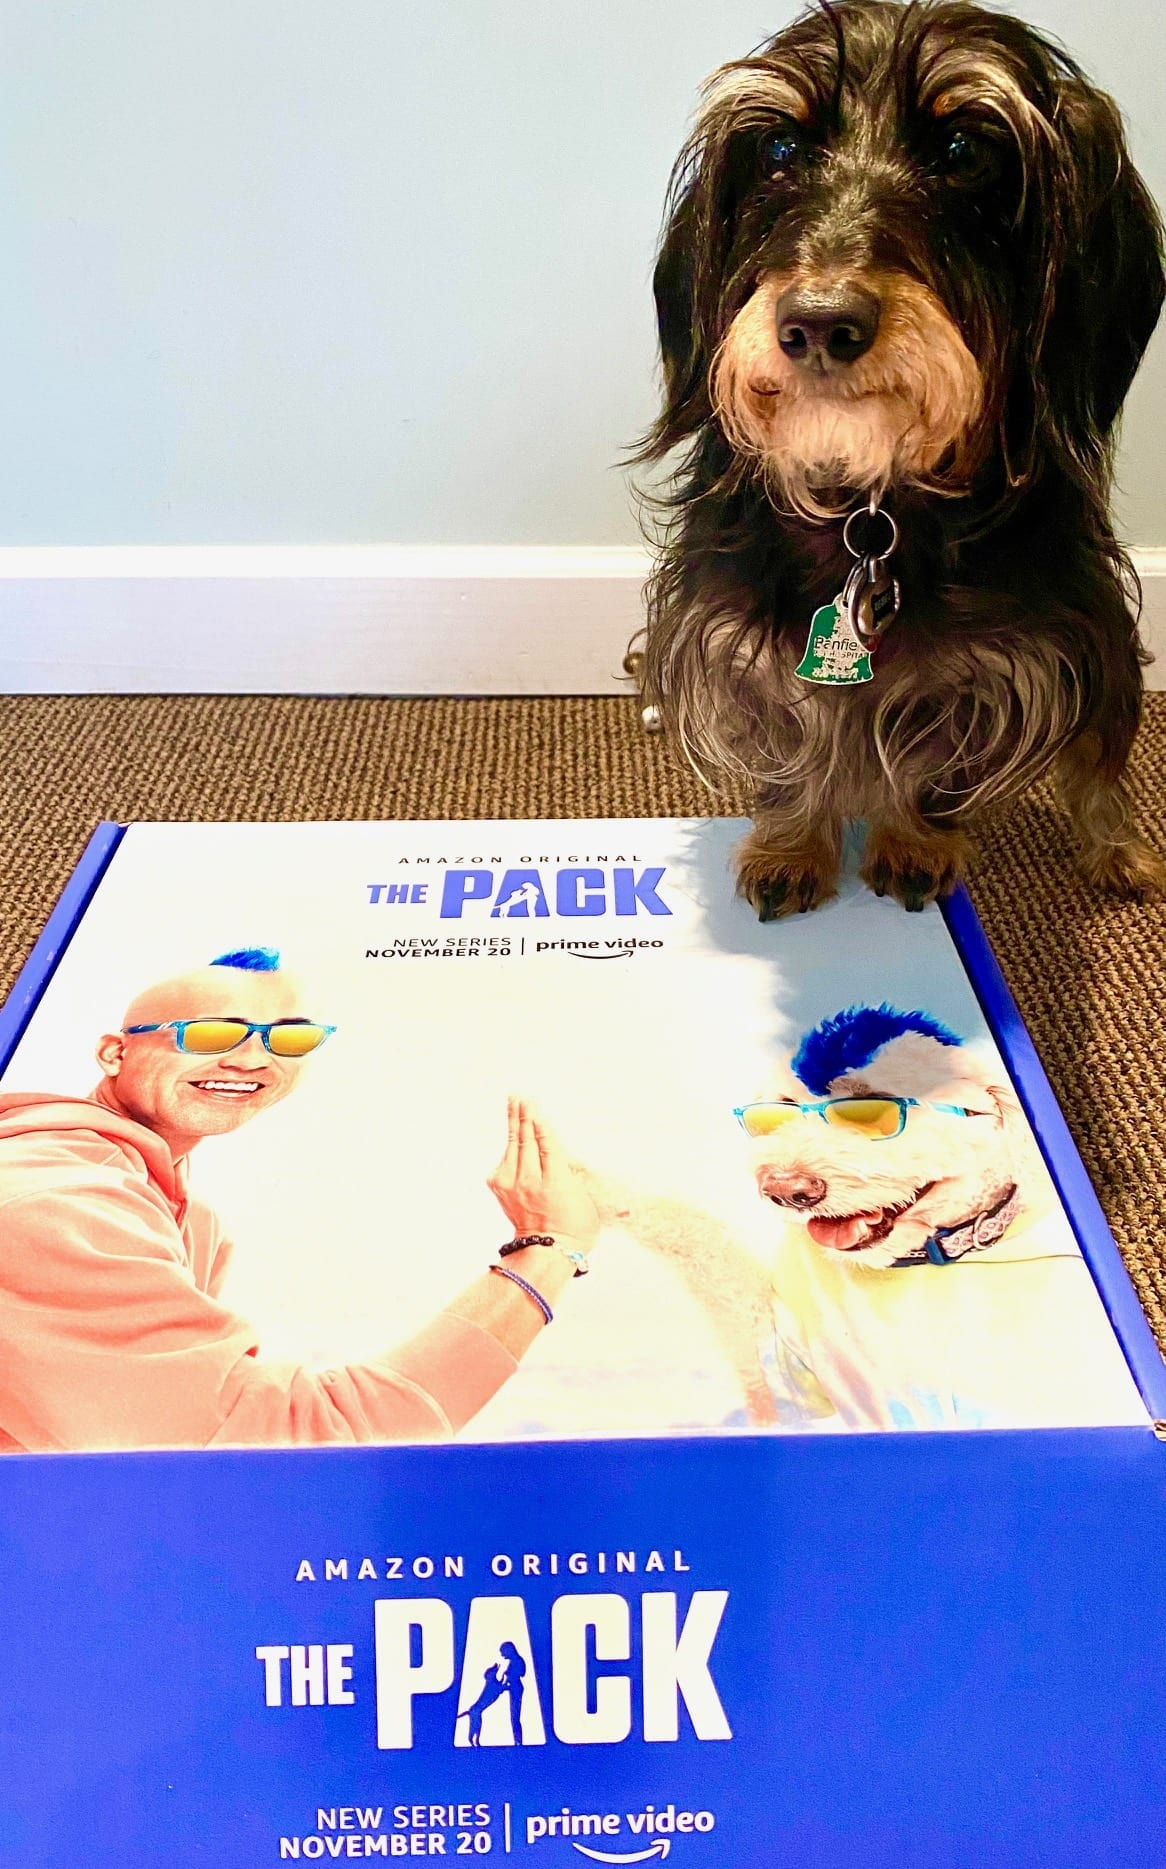 The Pack on Amazon Prime Video box with Rebel image